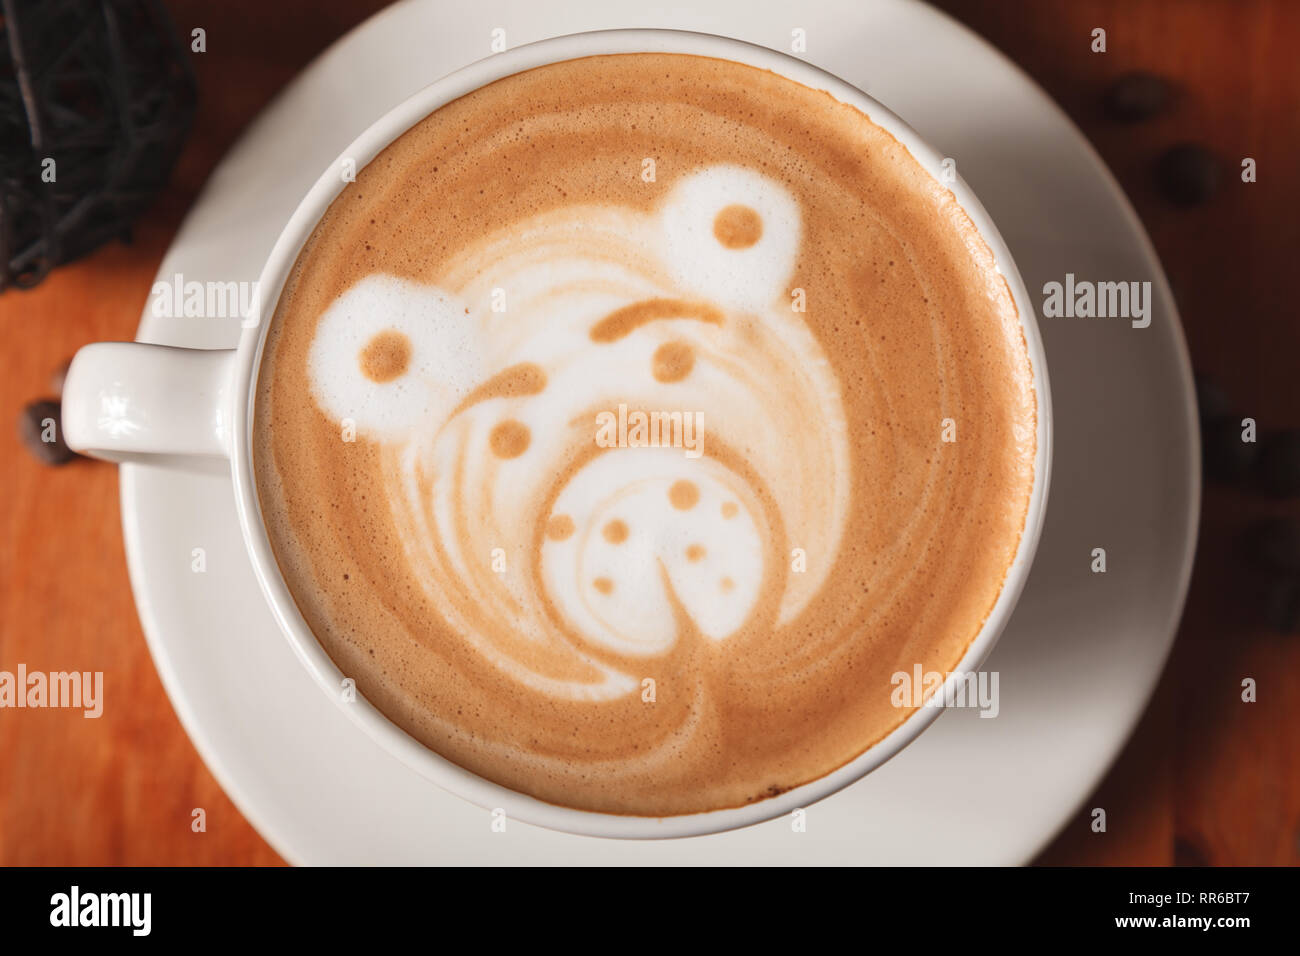 White Cup cappuccino coffee with a latte-art pattern in the form of a bear close-up on a wooden background. The concept of making coffee in a coffee s - Stock Image